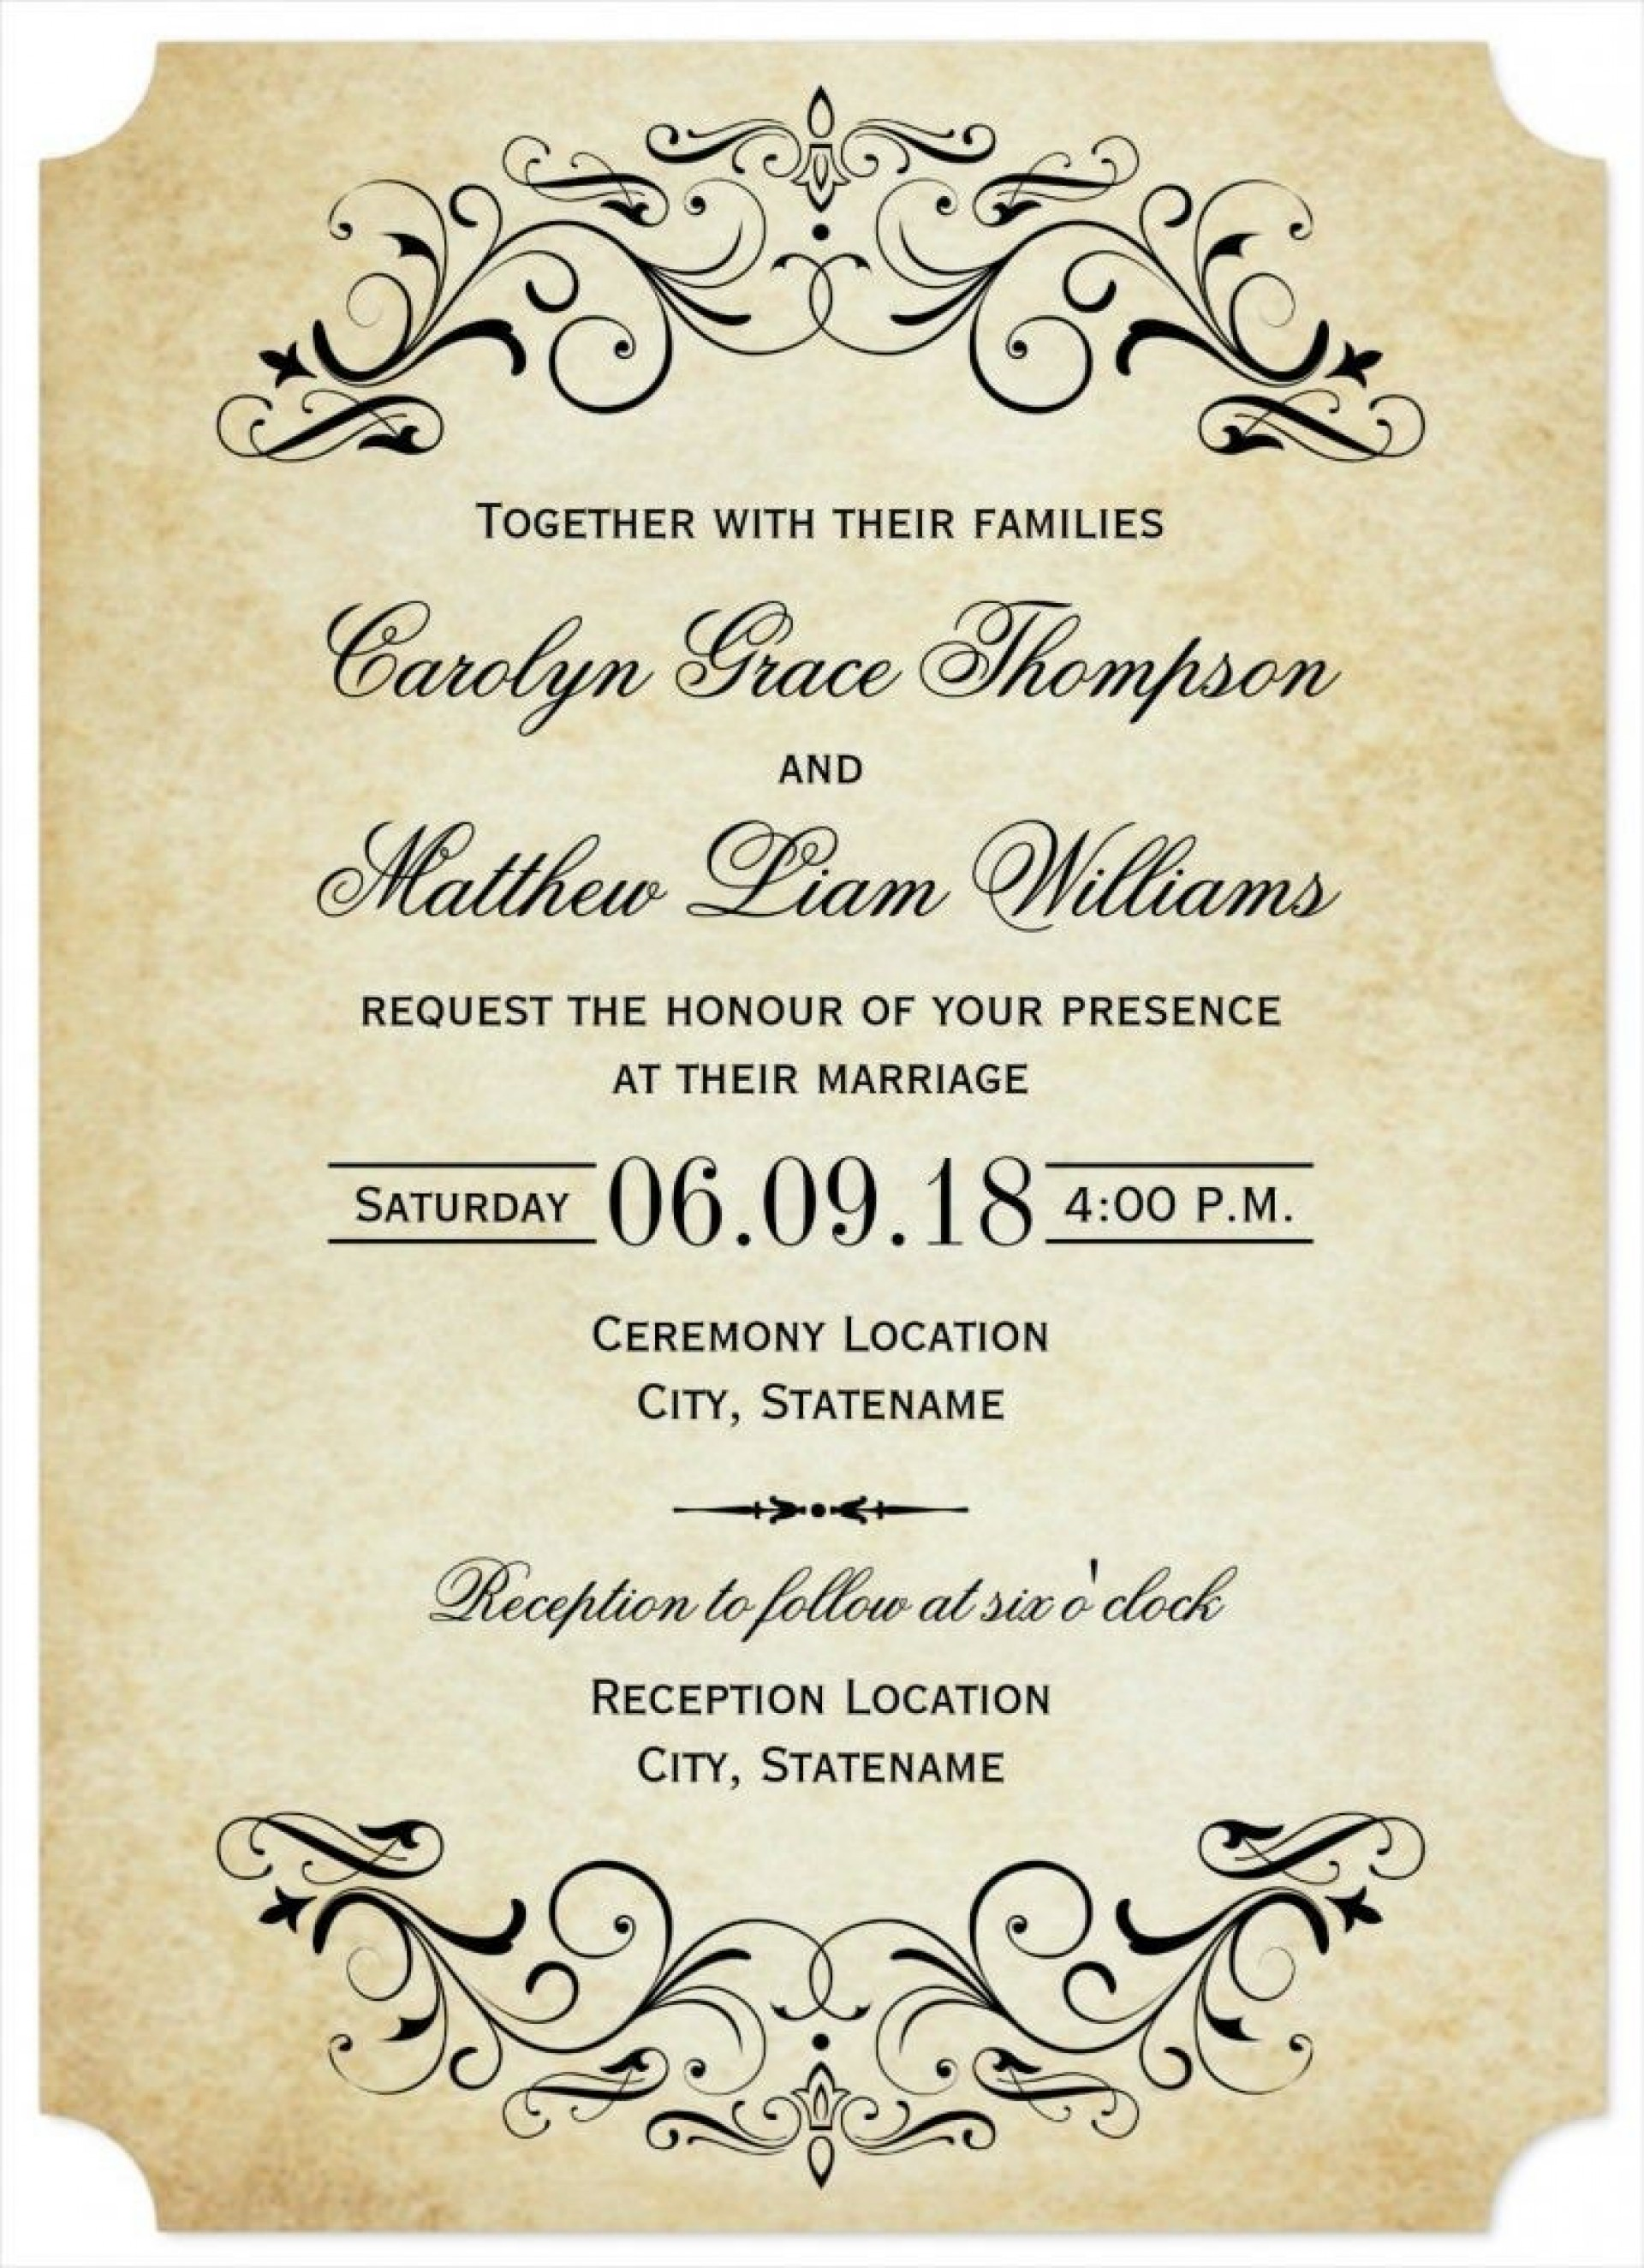 005 Exceptional Wedding Invite Wording Template Highest Clarity  Templates Chinese Invitation Microsoft Word From Bride And Groom Example Inviting1920